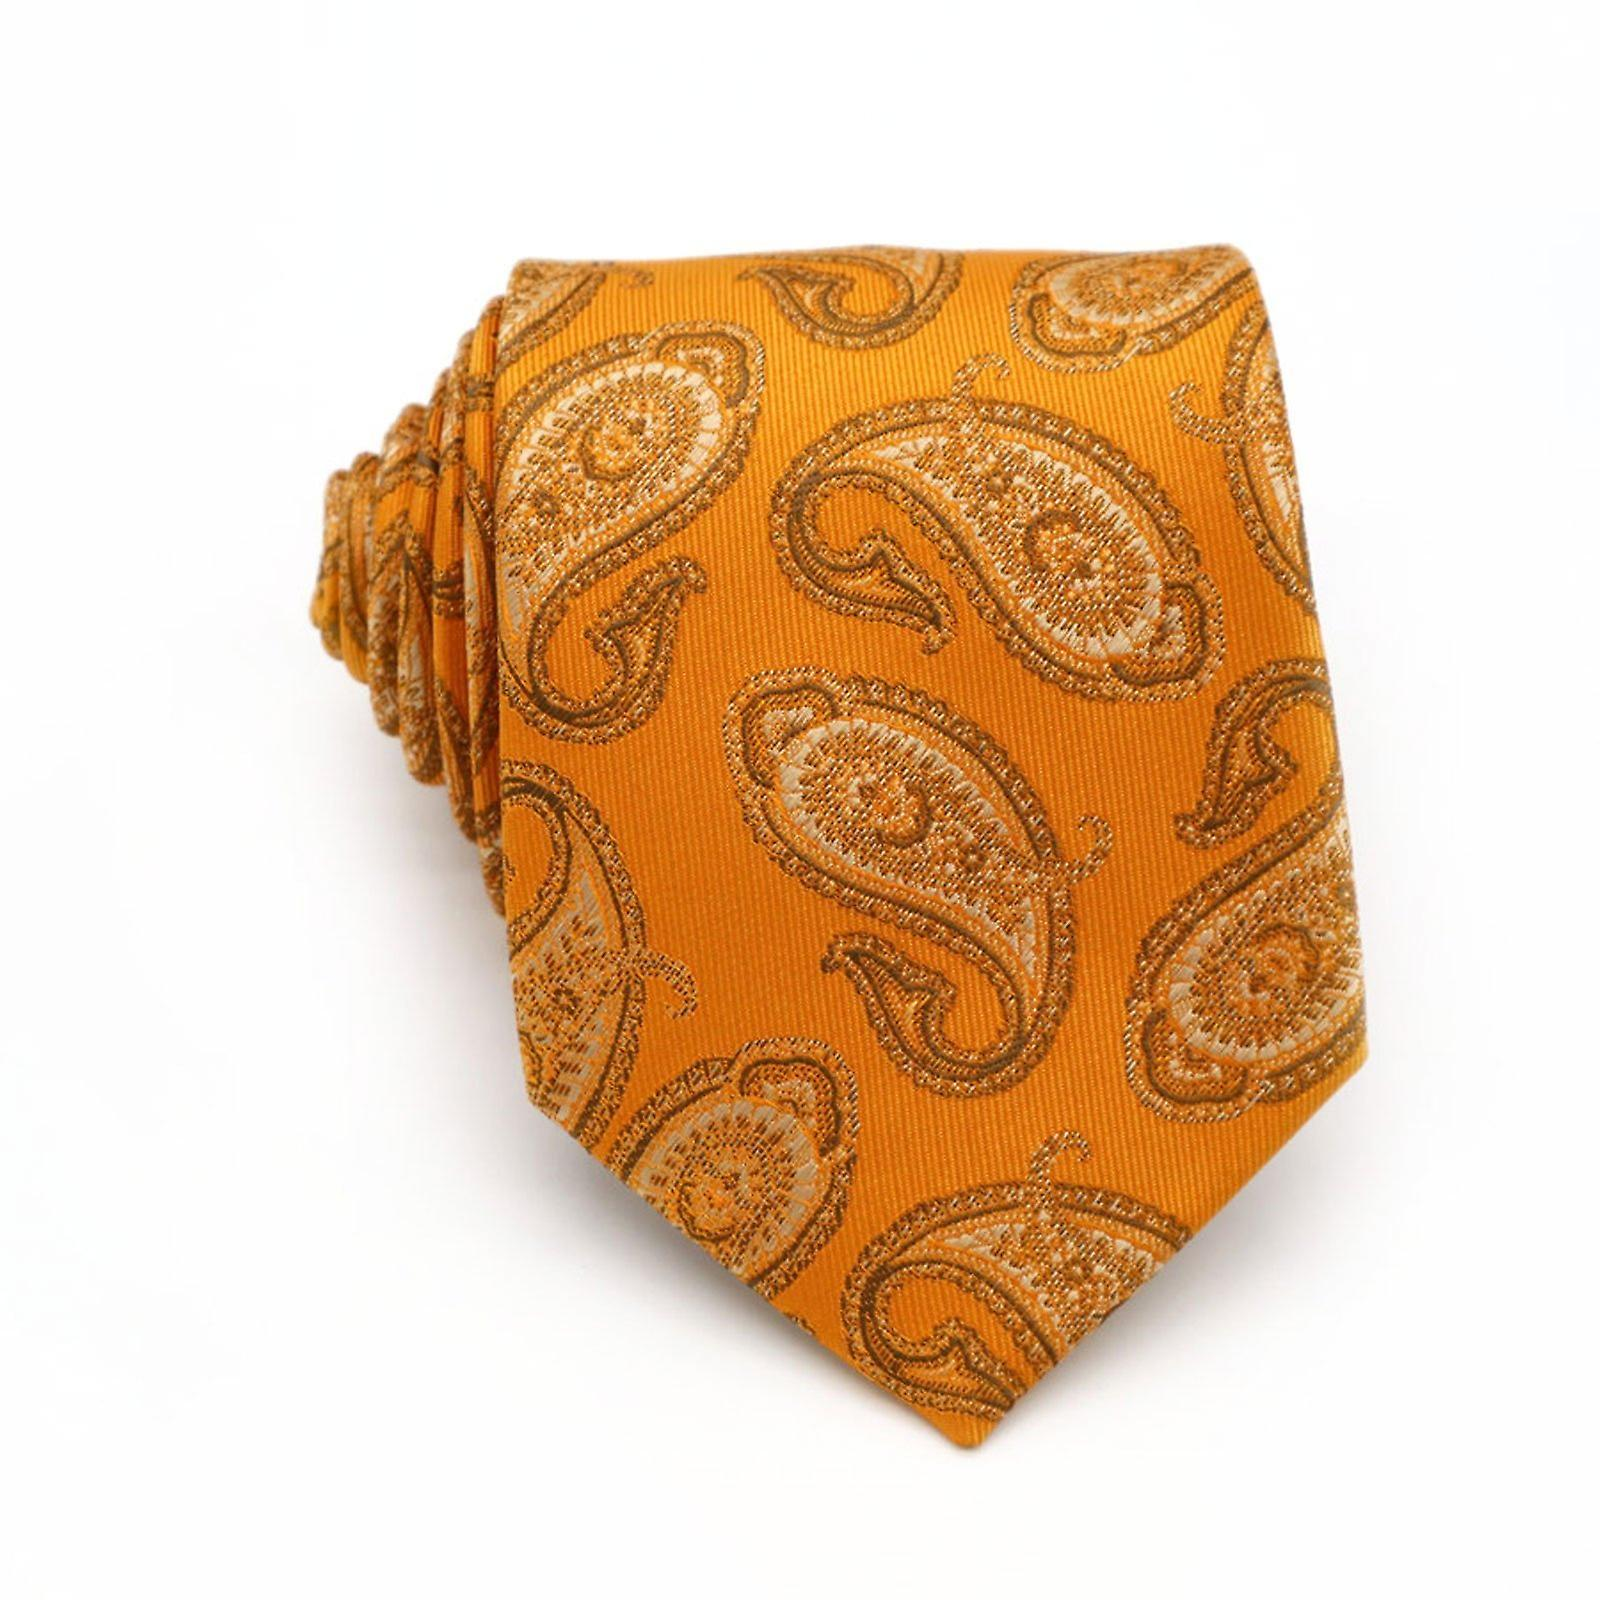 Orange paisley pattern necktie tie & pocket square set